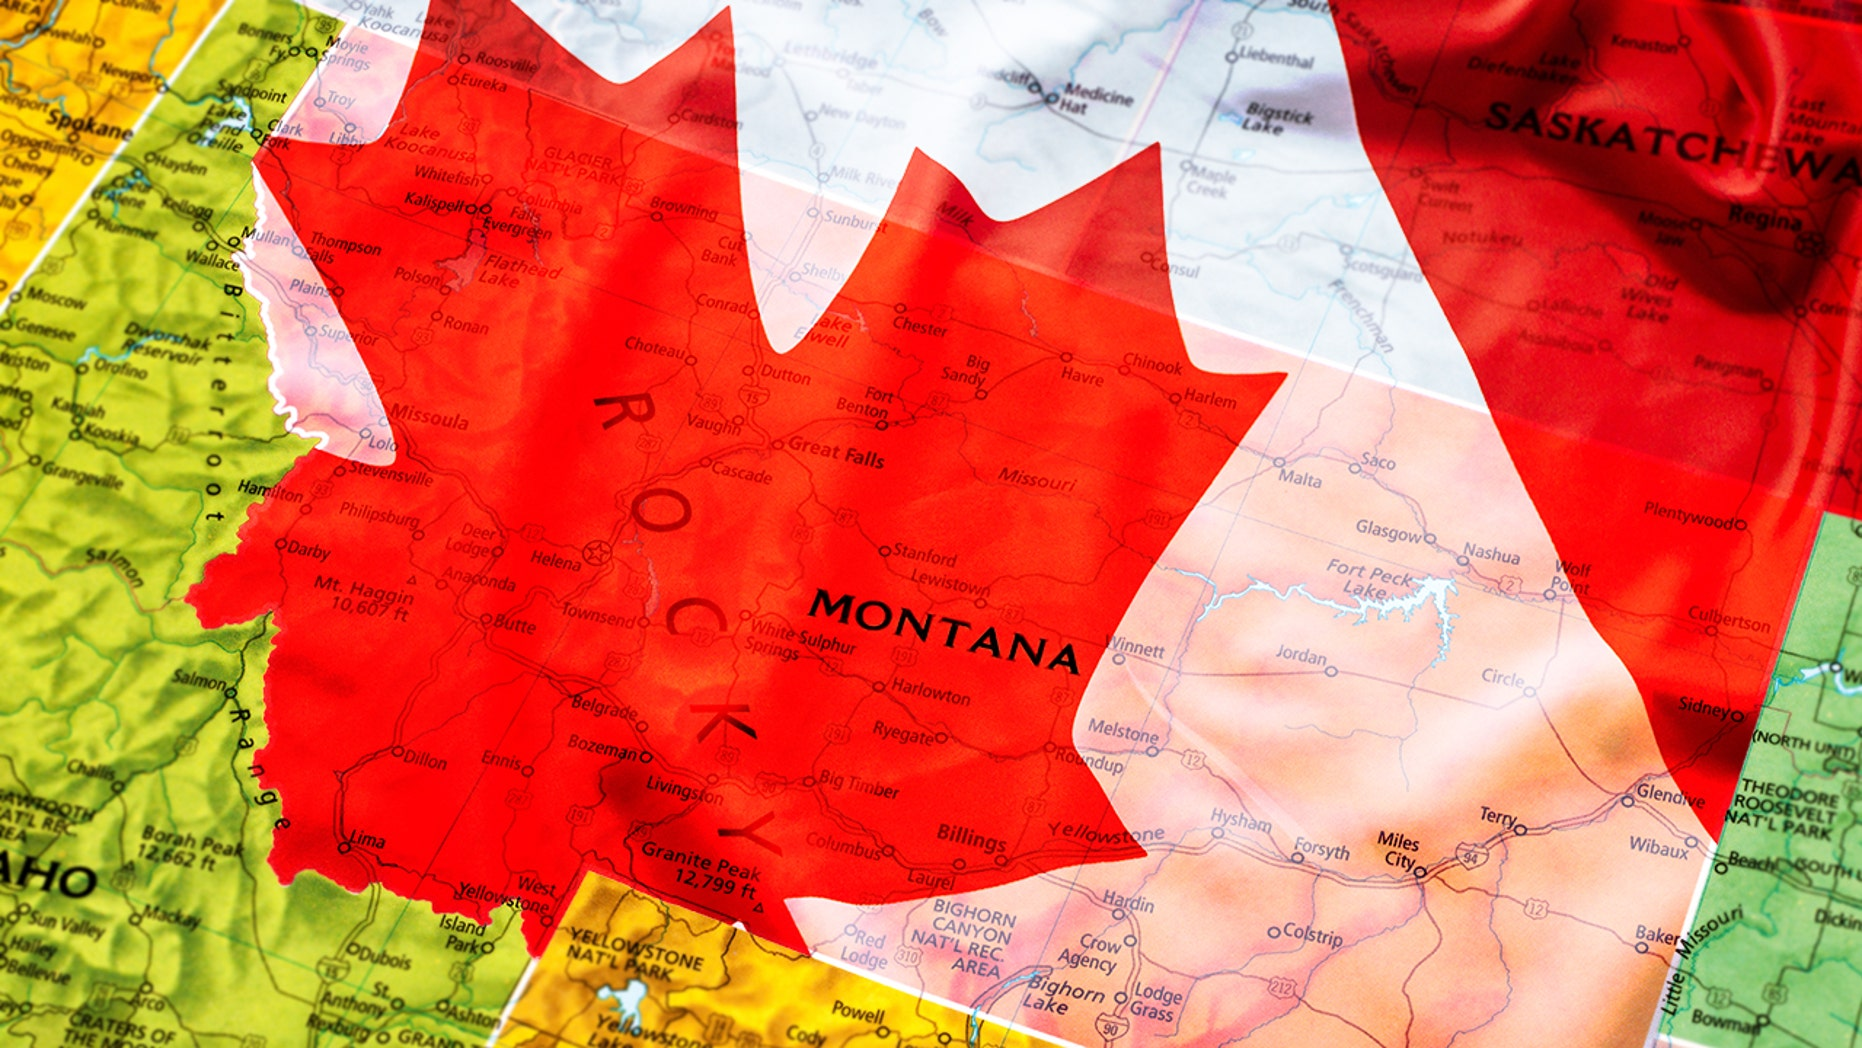 Montana to Canada for a $1 trillion?